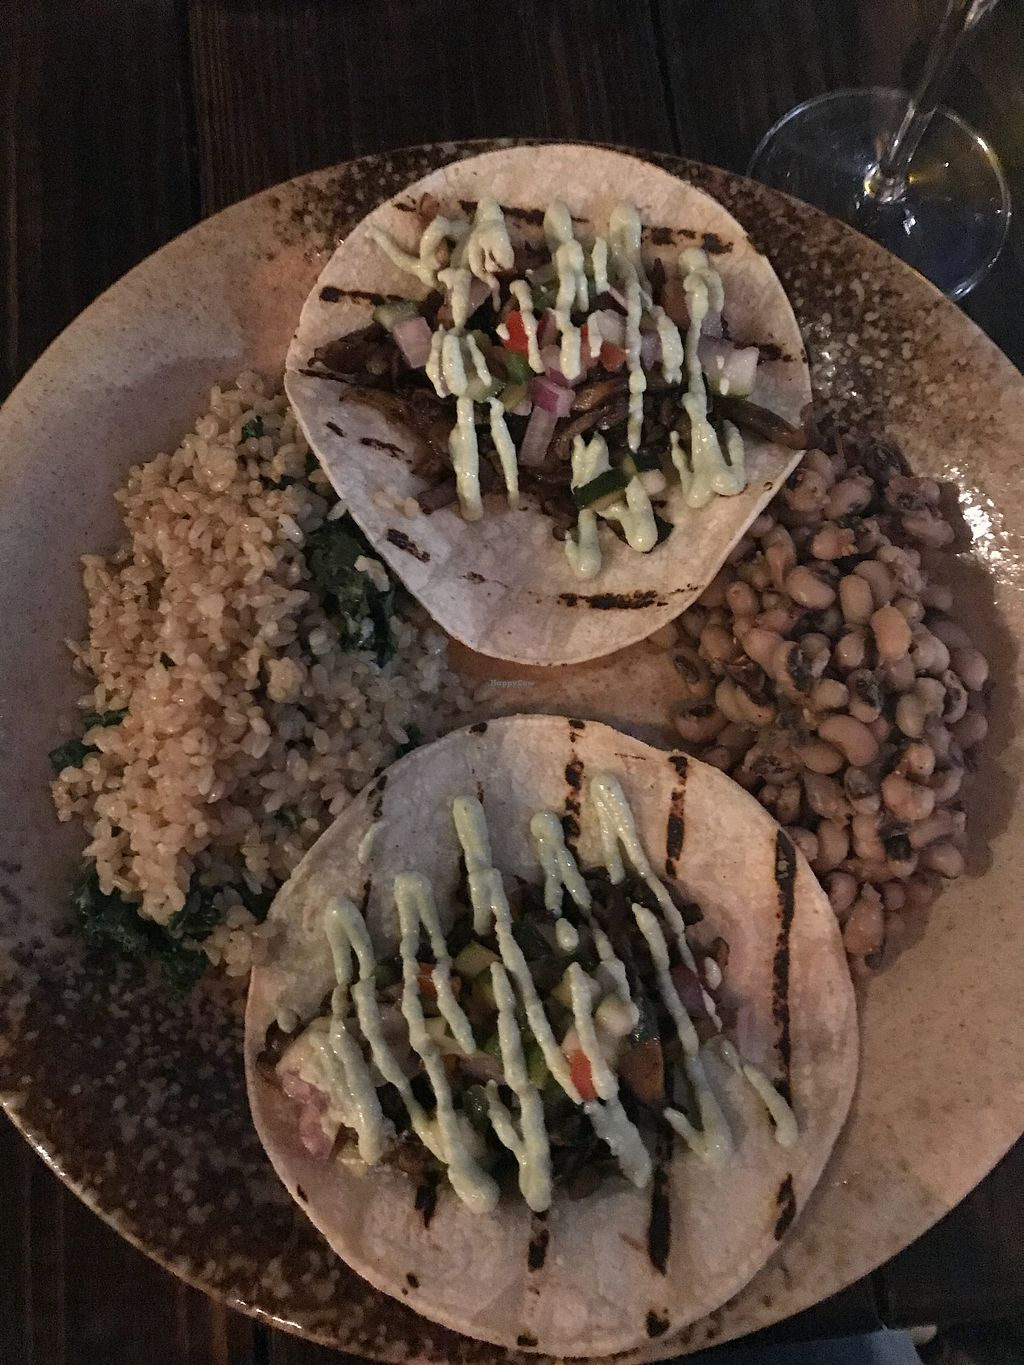 """Photo of Soul Tavern  by <a href=""""/members/profile/brooke123"""">brooke123</a> <br/>Mushroom tacos <br/> November 5, 2017  - <a href='/contact/abuse/image/99930/322169'>Report</a>"""